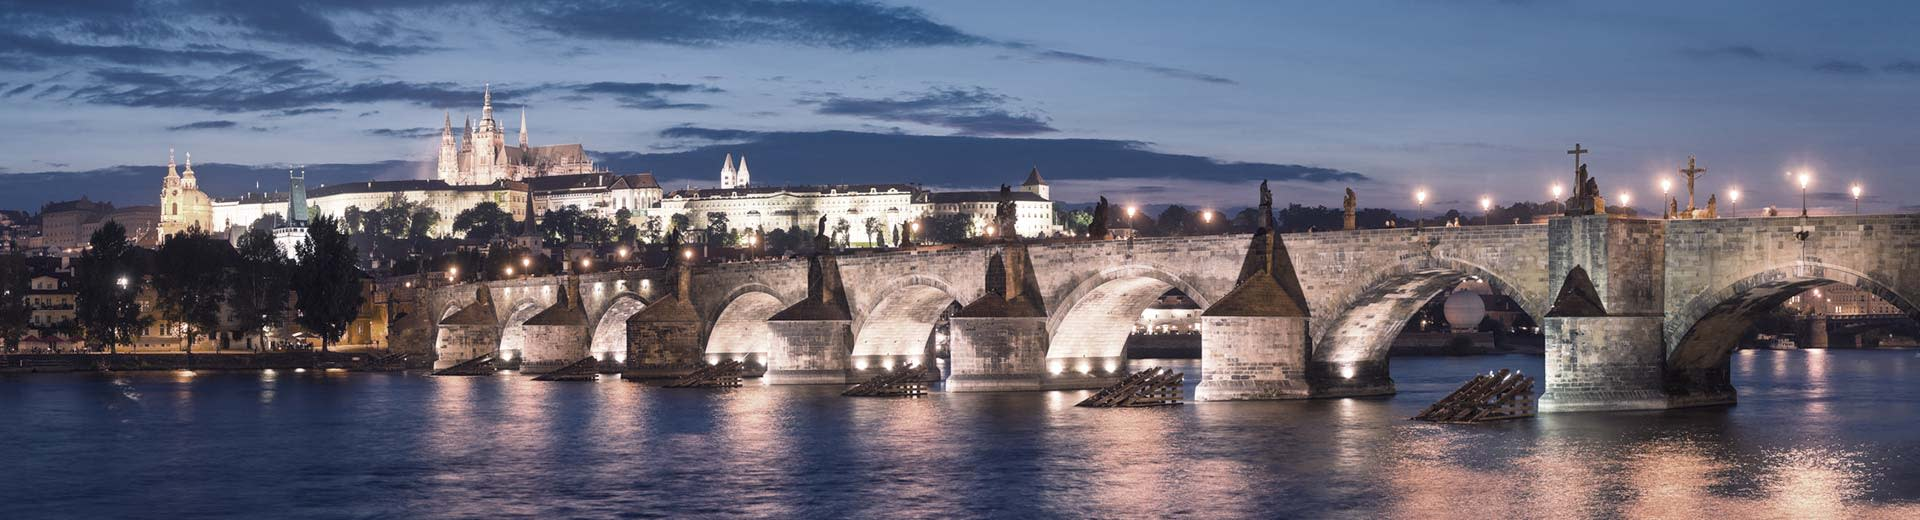 The famous Charles Bridge in Prague is deftly illuminated under a sky of dusk or dawn, with historic spires in the background